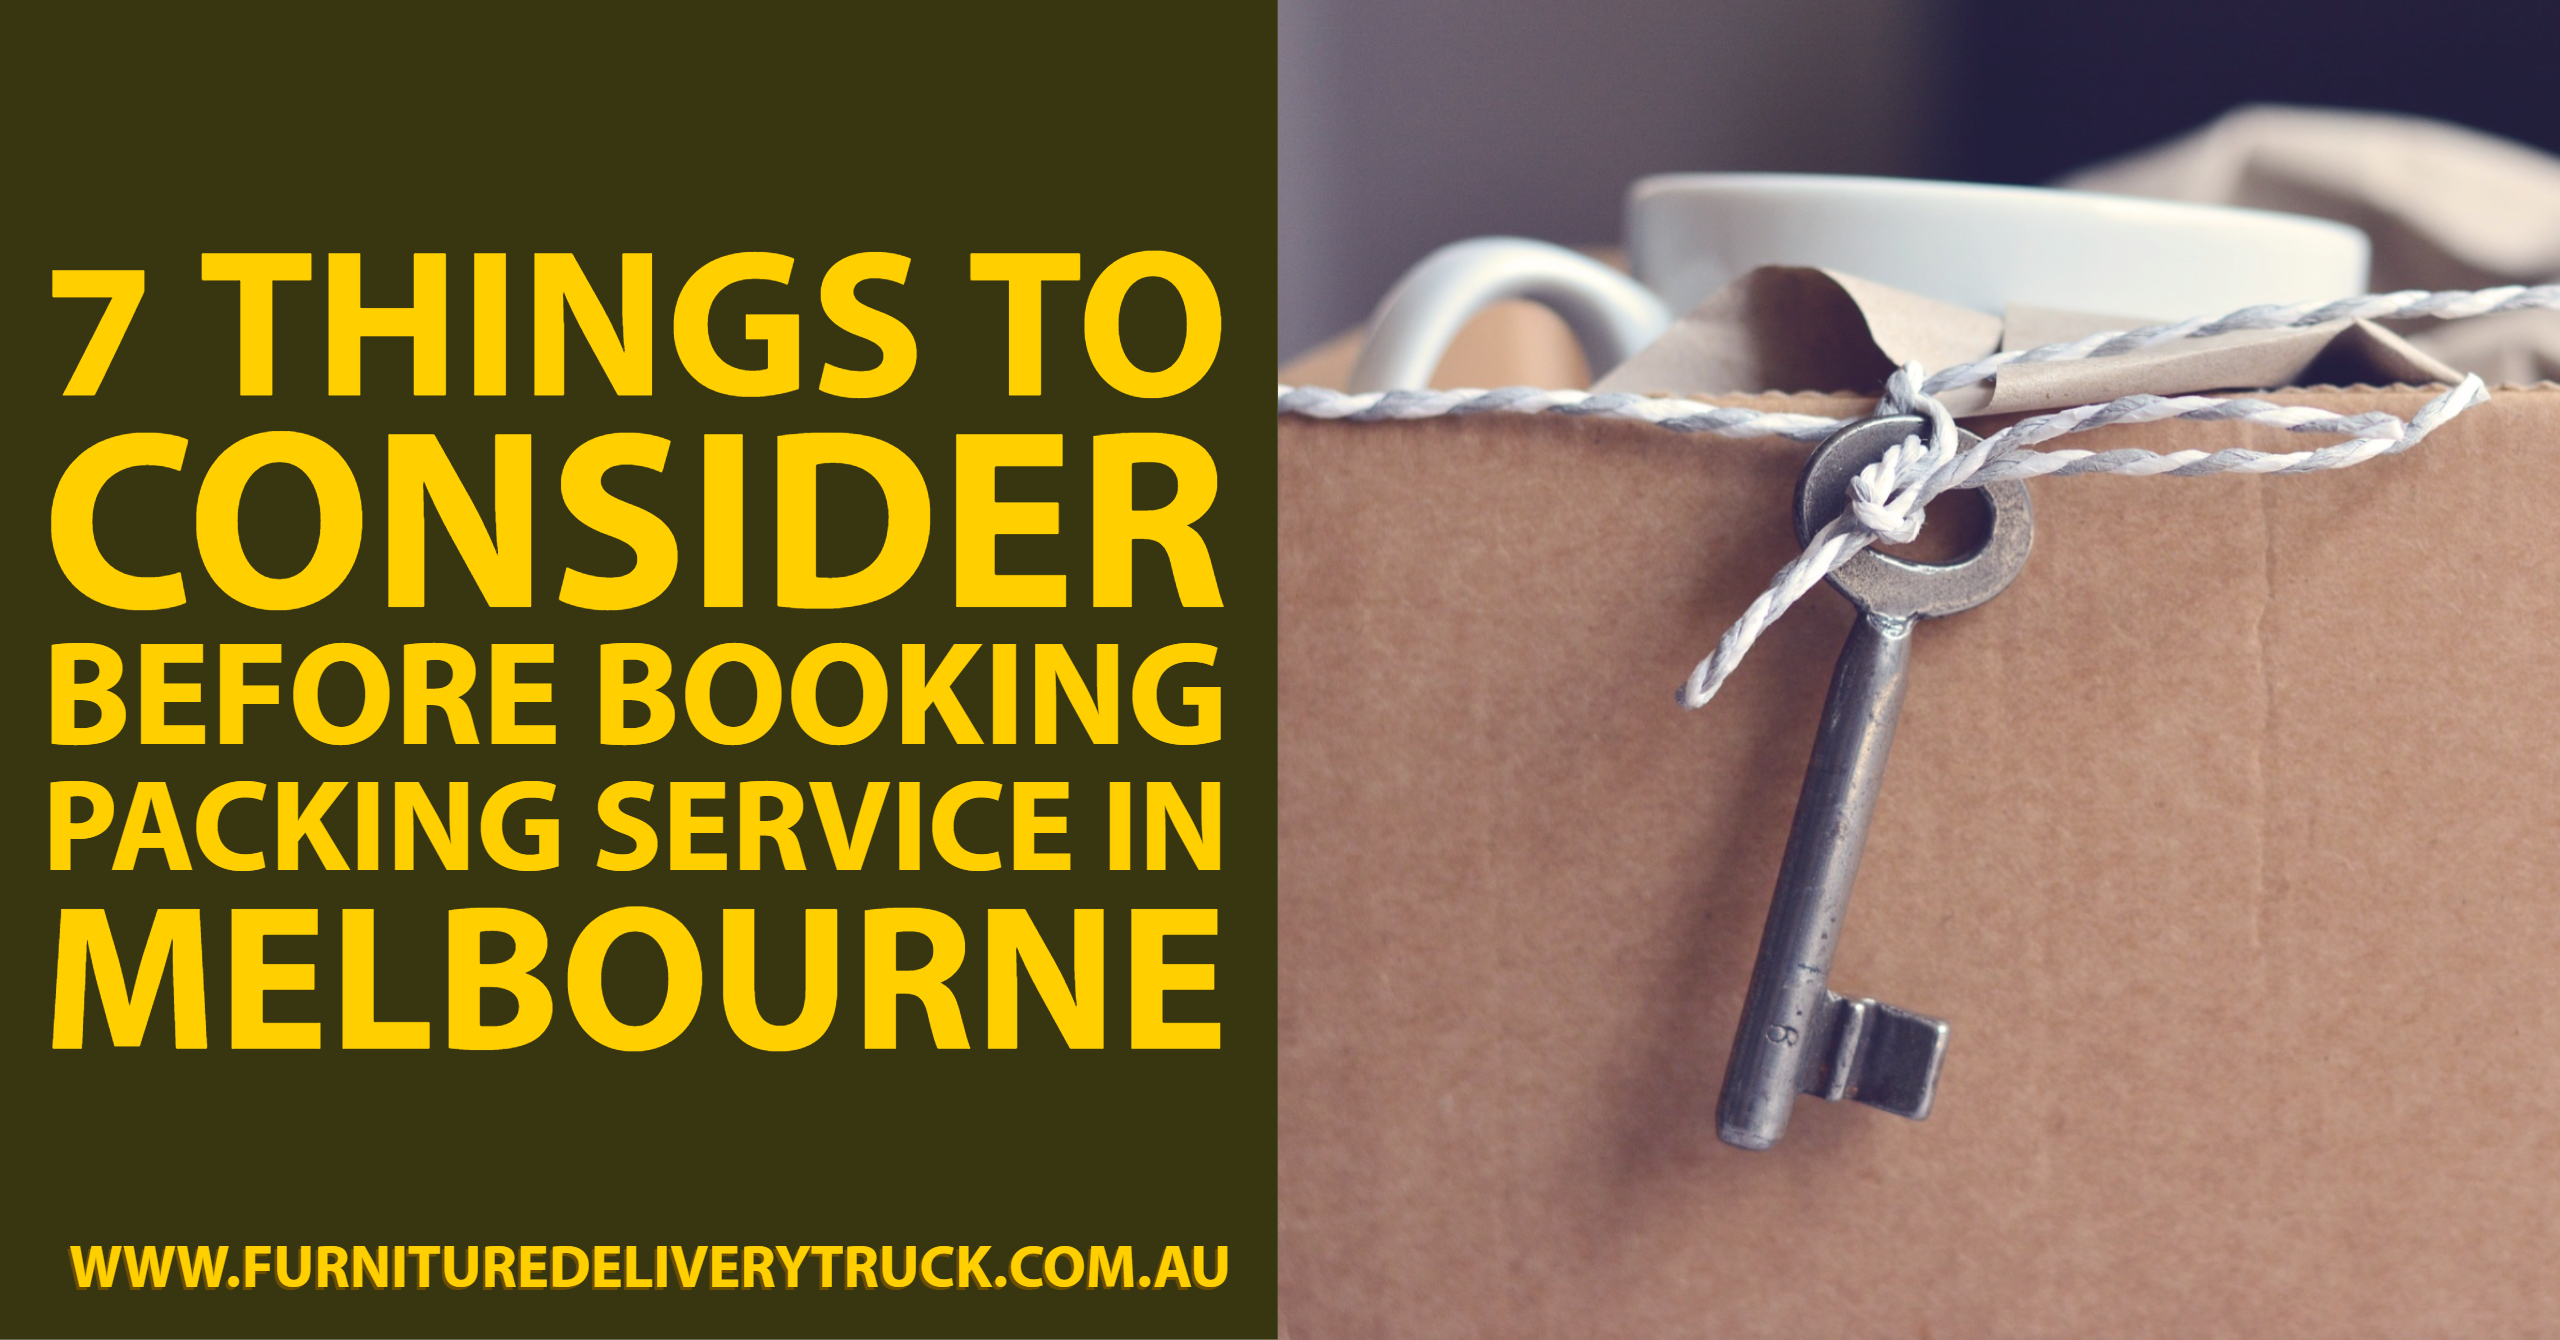 7 Things to Consider Before Booking Packing Service in Melbourne